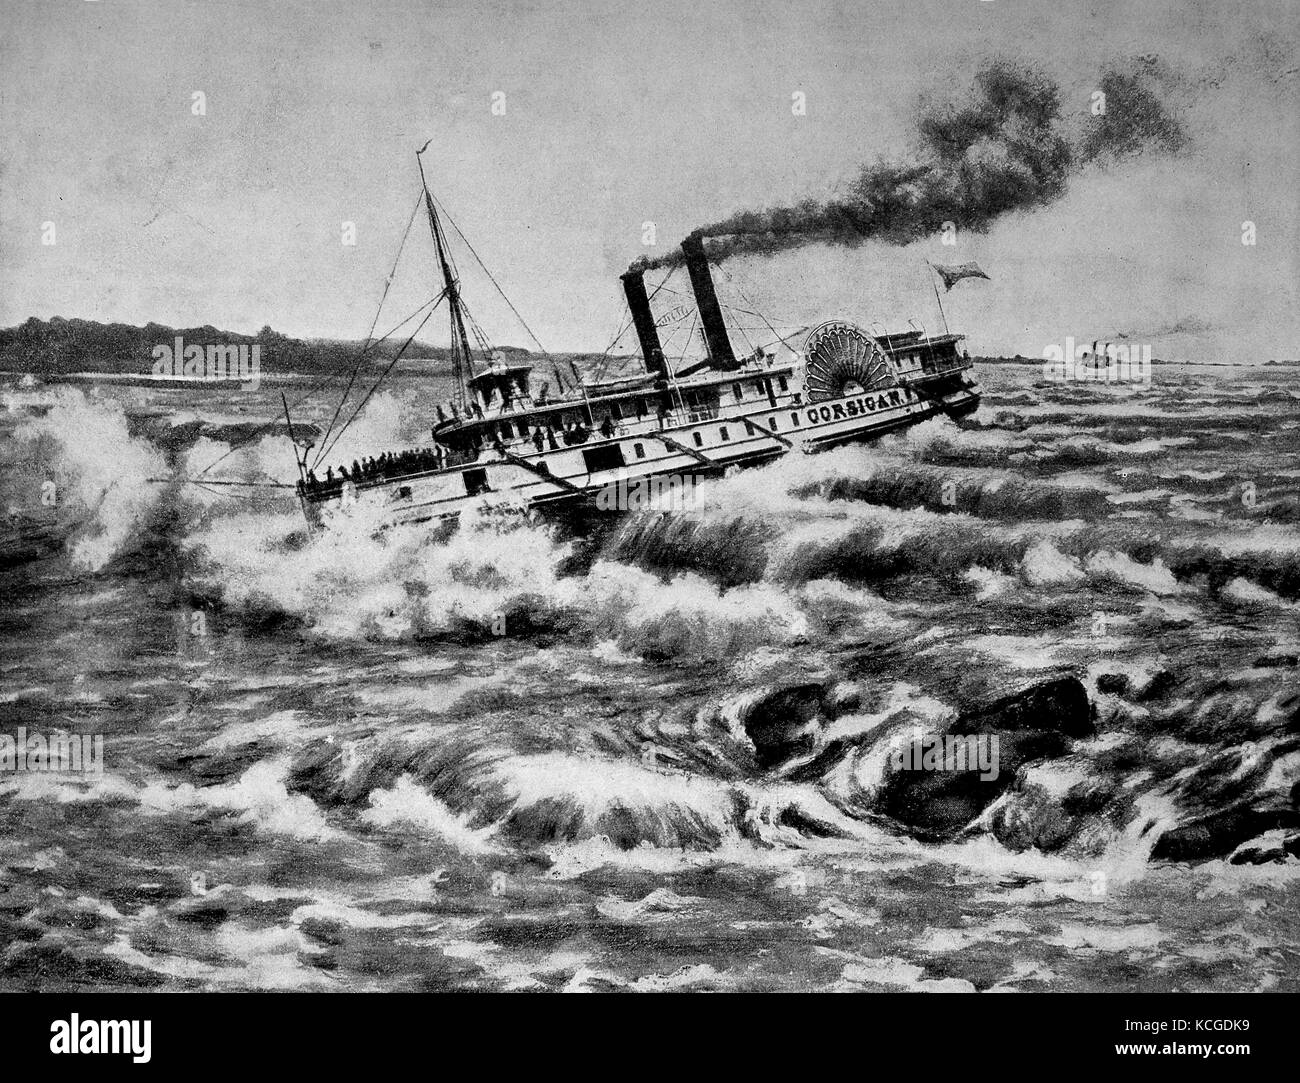 United States of America, with the steamer down the rapids of the Sant Lorenz river, digital improved reproduction - Stock Image